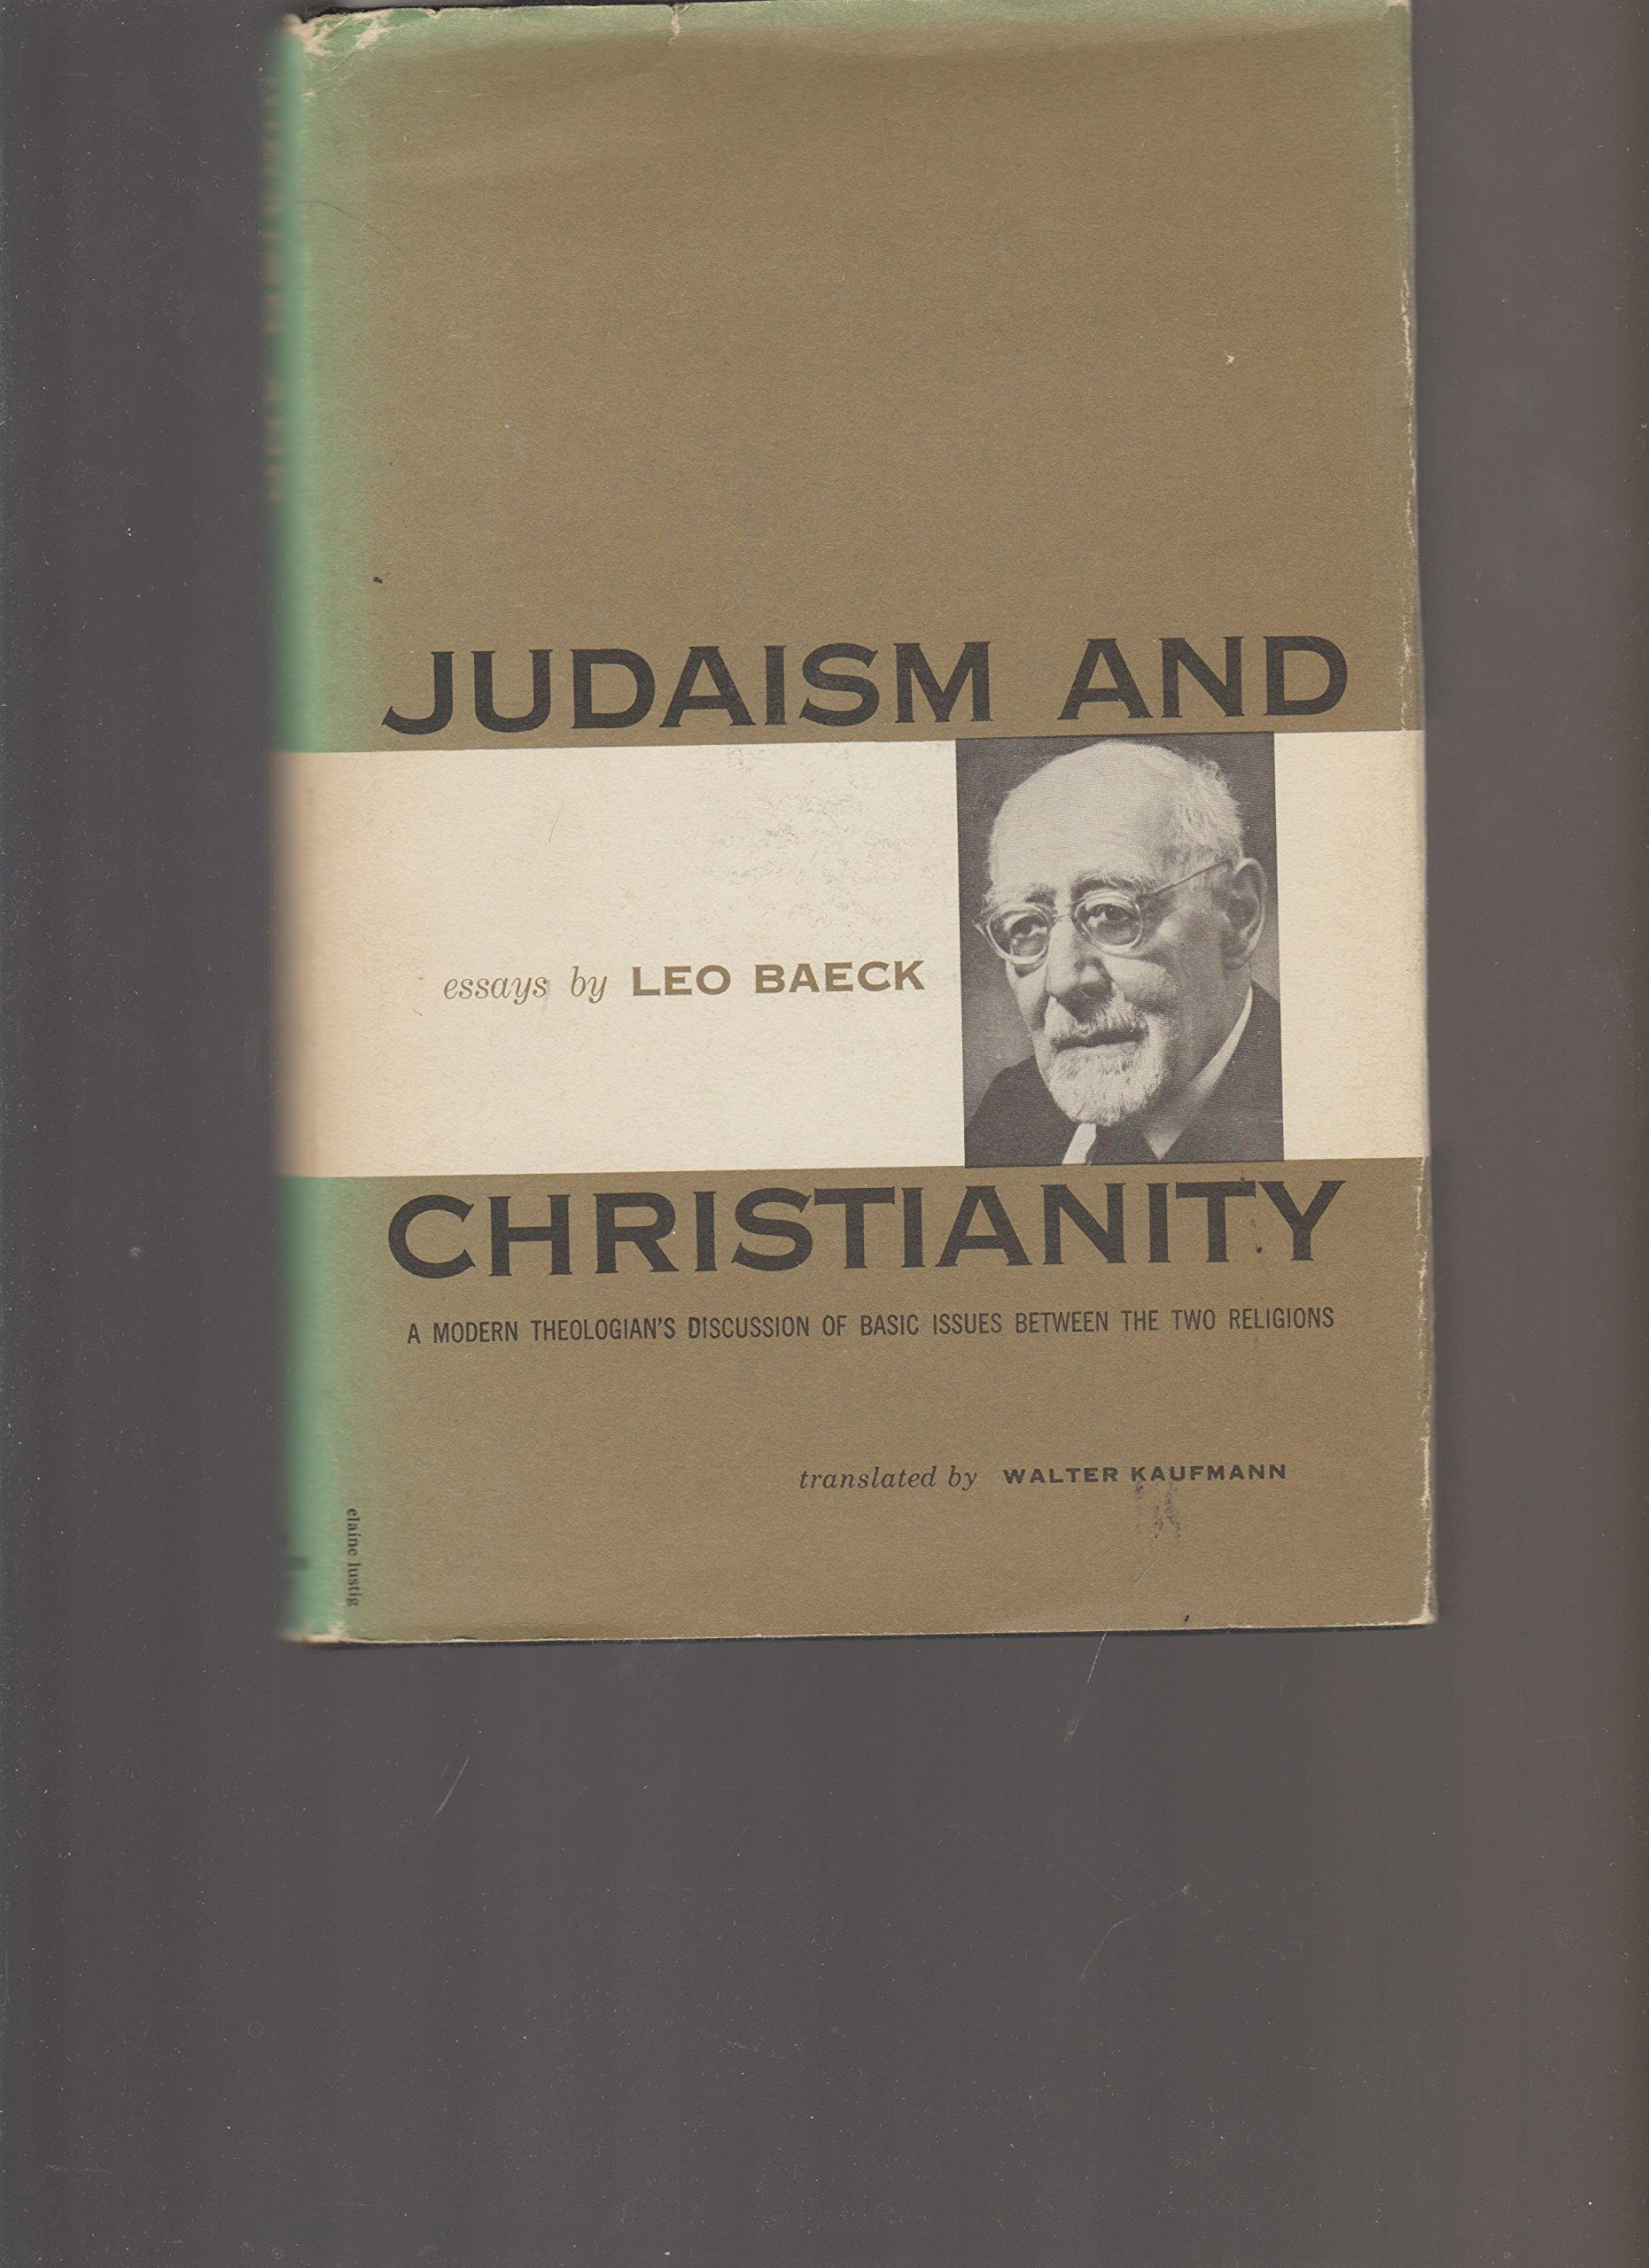 essay judaism and christianity  essay judaism and christianity